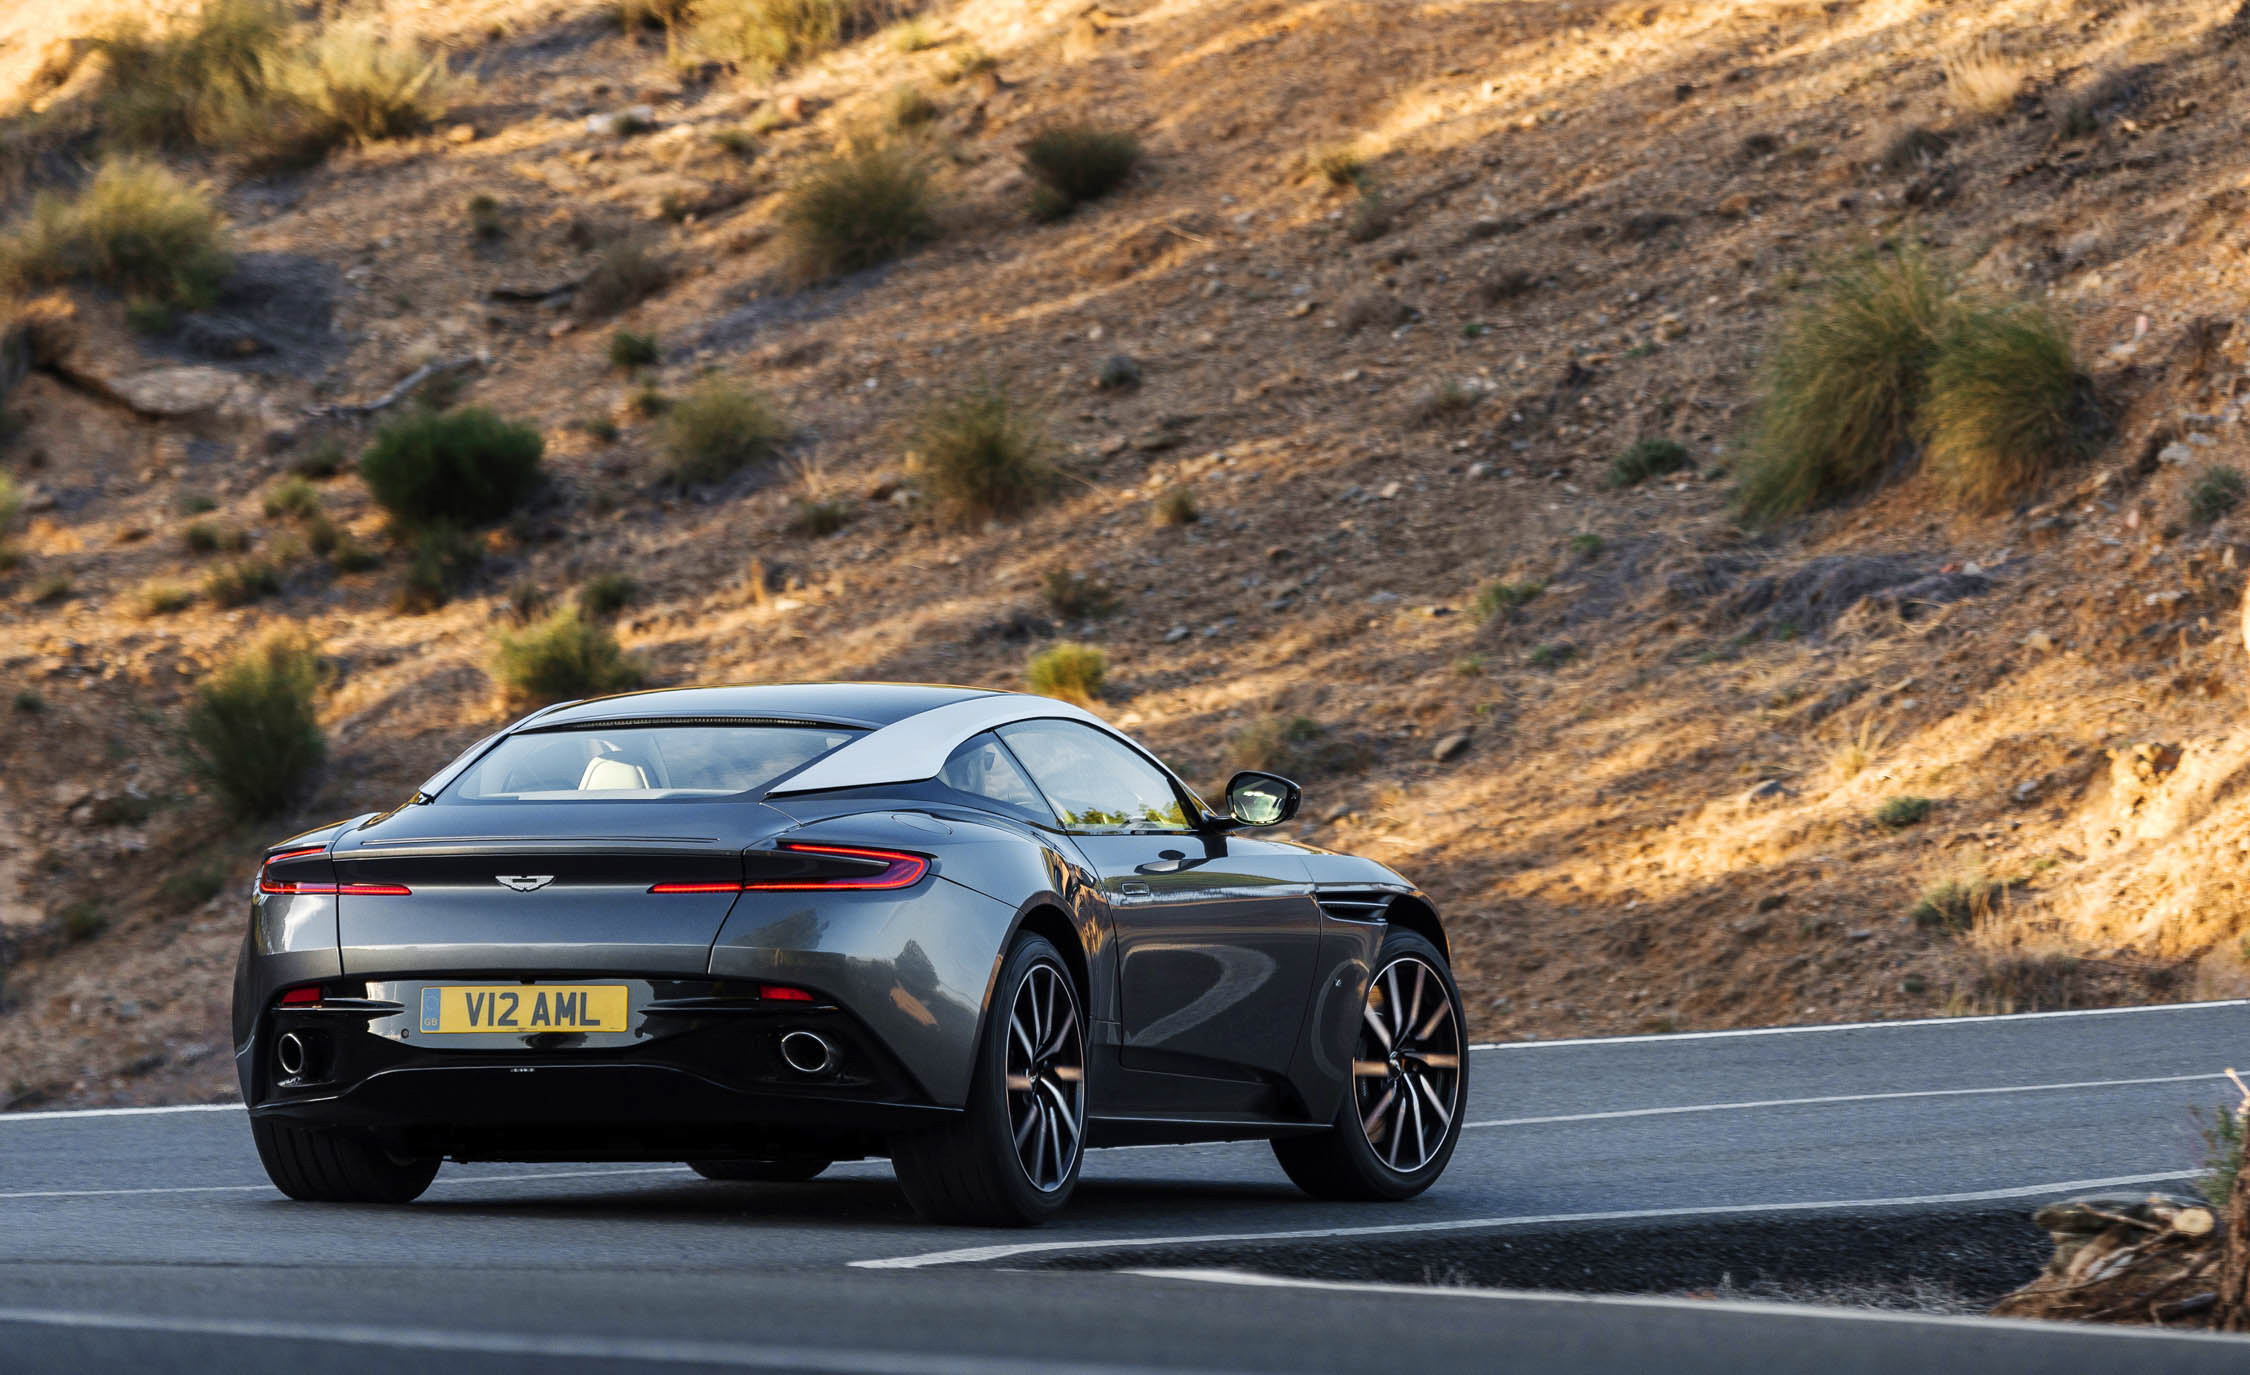 2017 Aston Martin Db11 Test Drive Rear View (View 10 of 22)